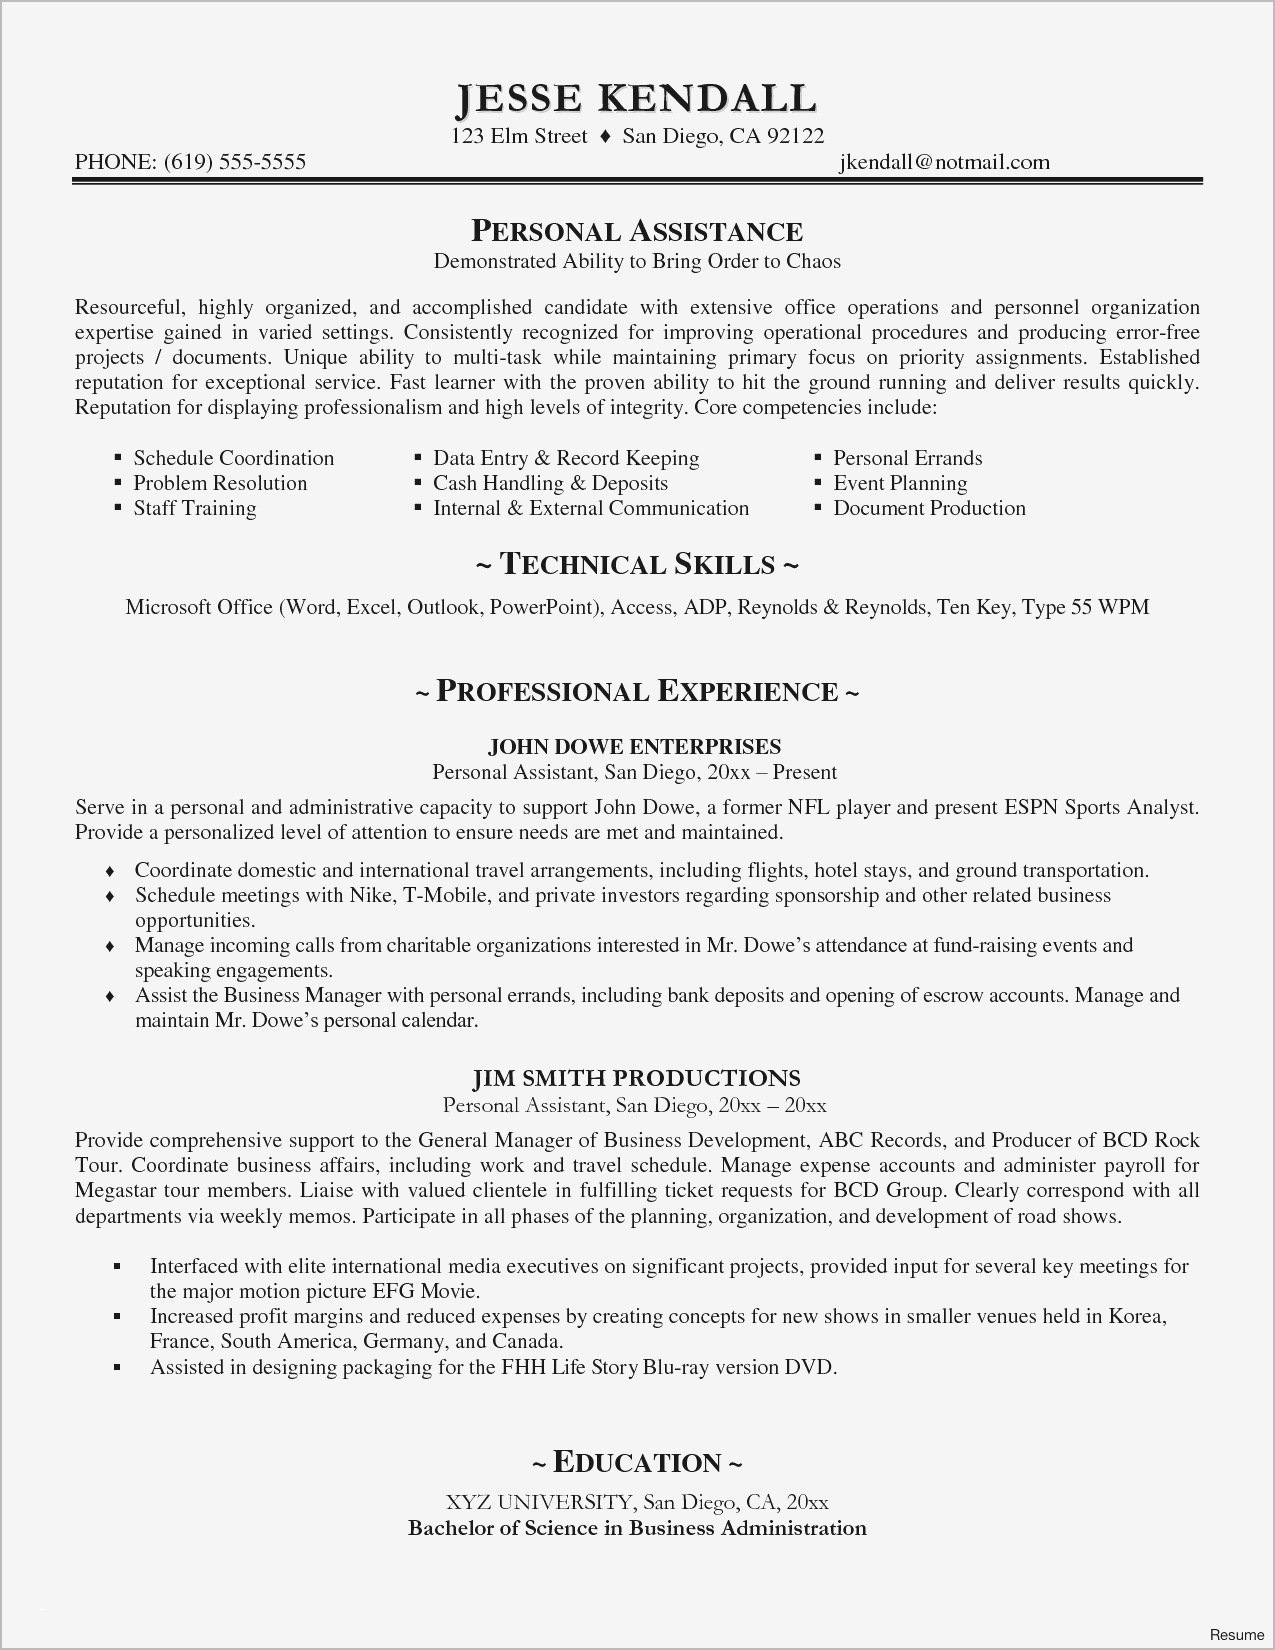 Letter to Investors Template - Resume Templates Microsoft Word 2007 Aurelianmg